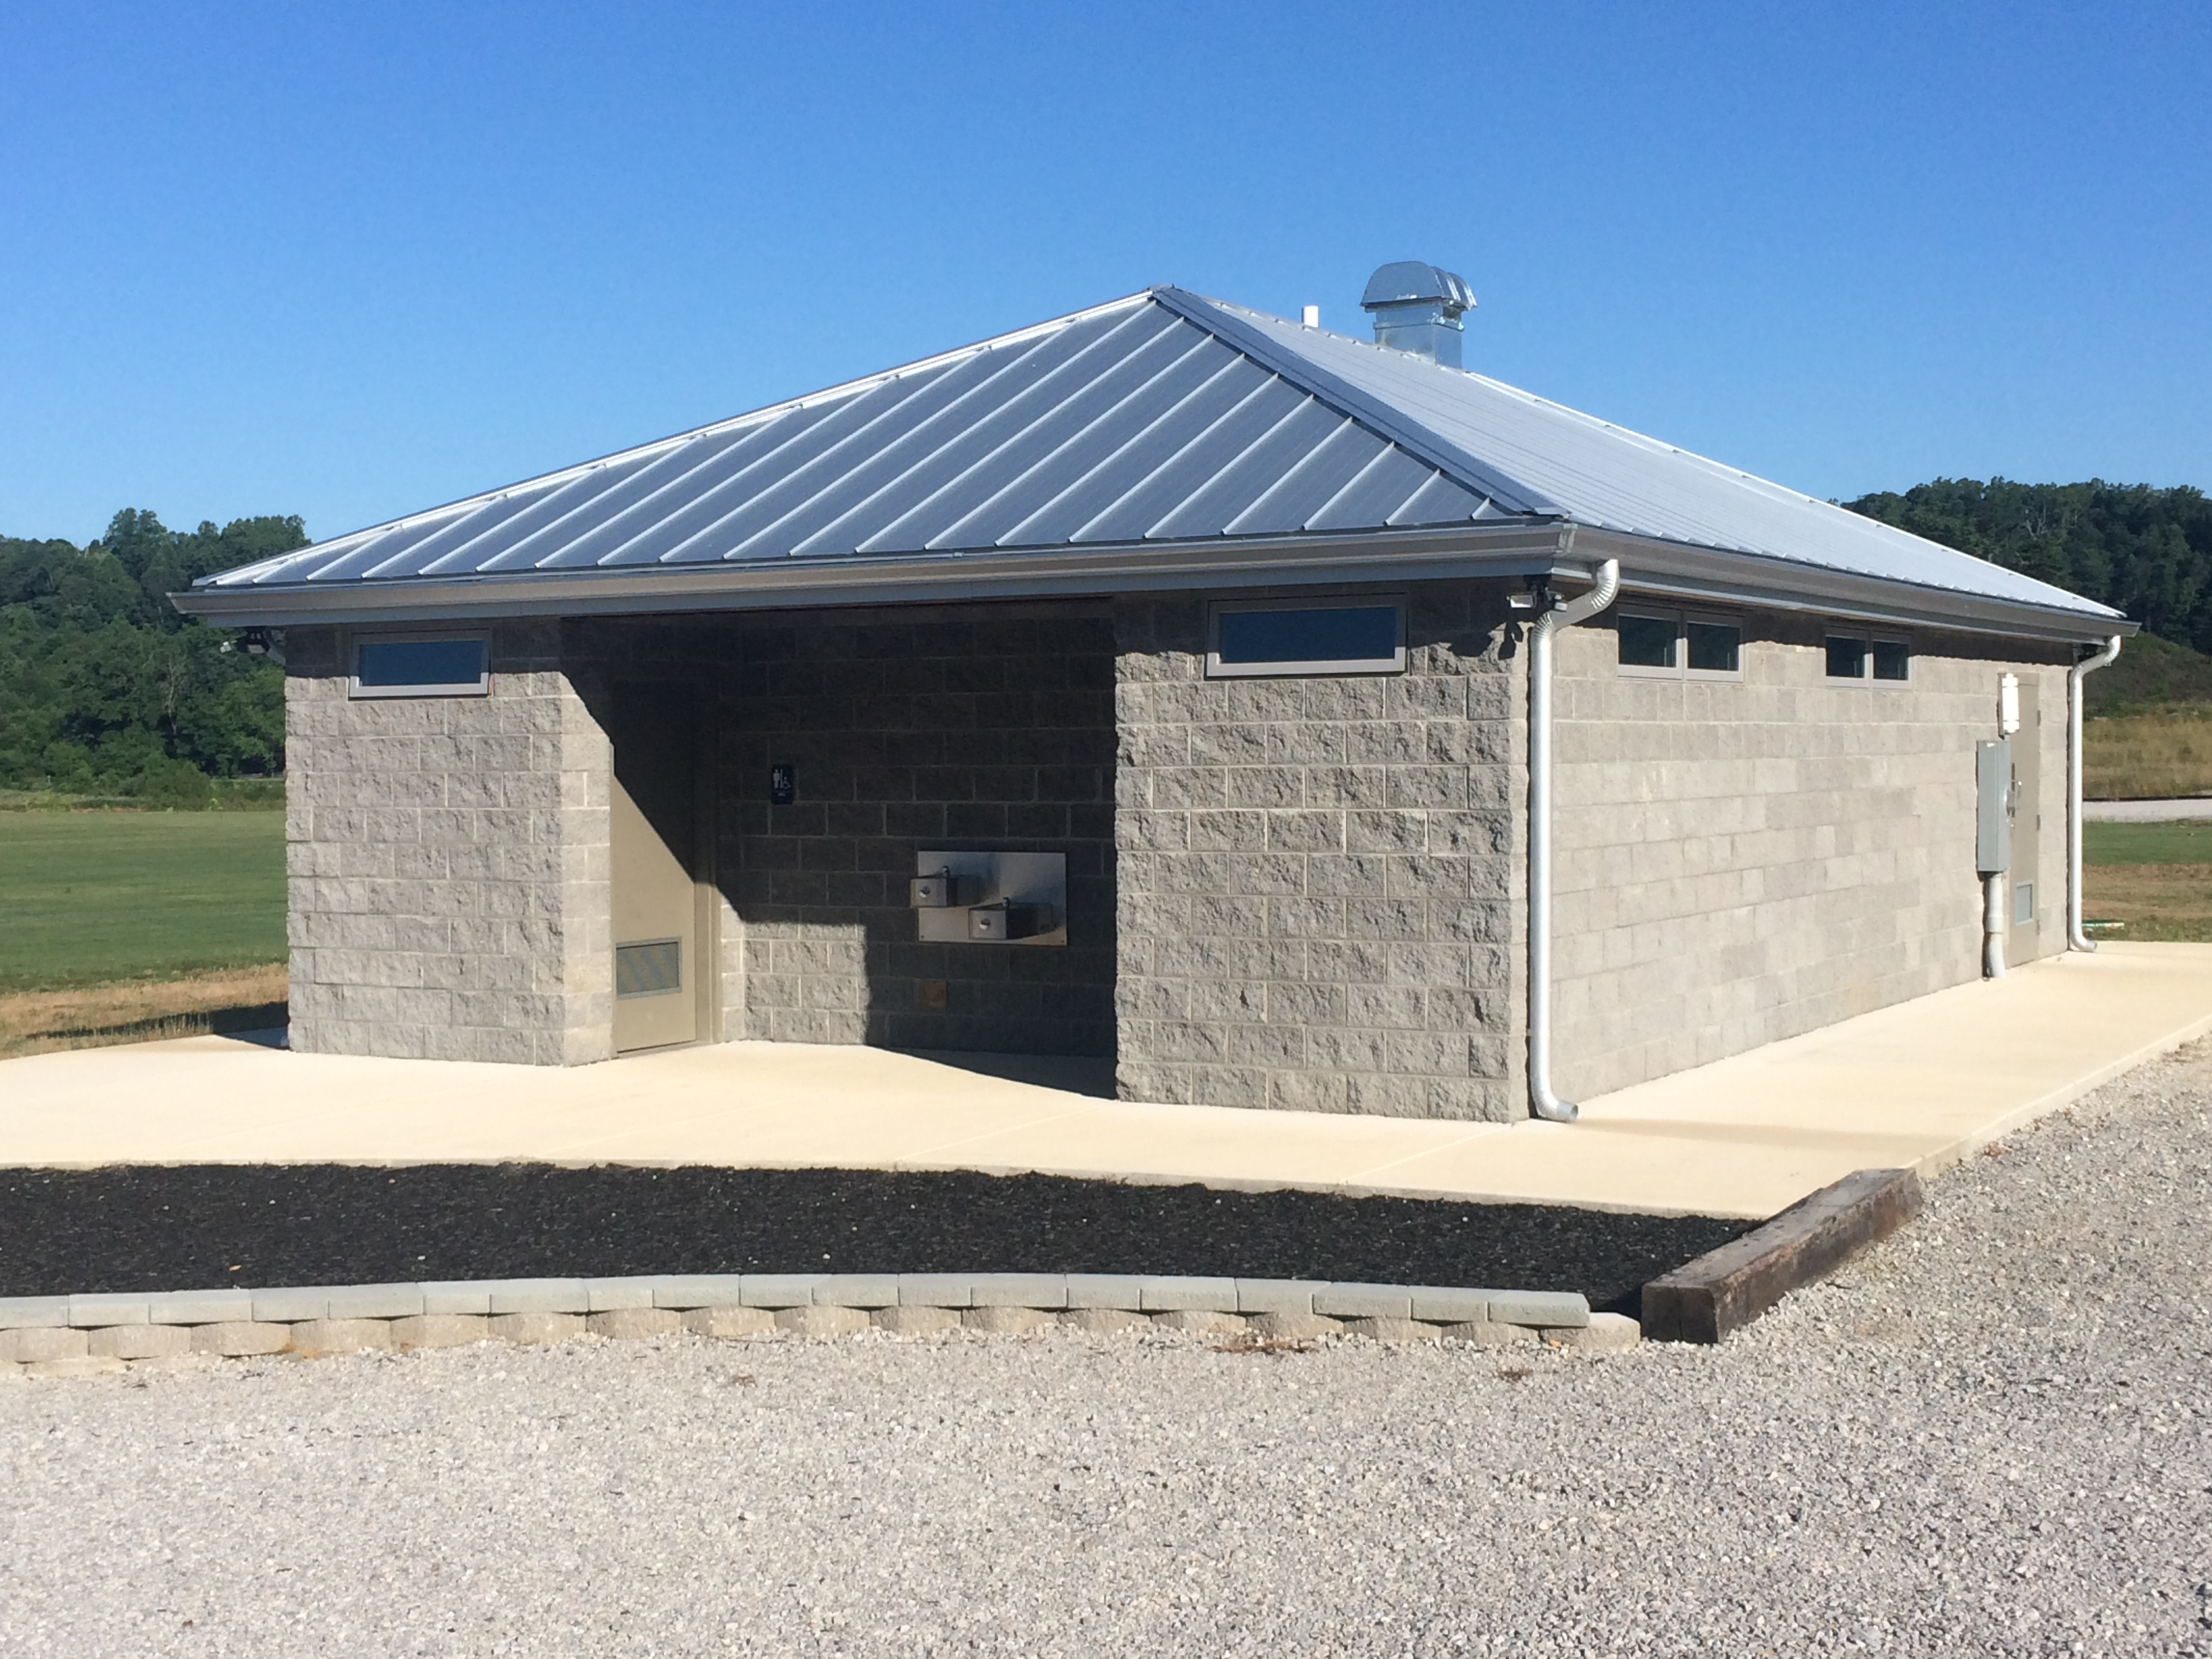 Roane County Parks - Swan Pond Facilities